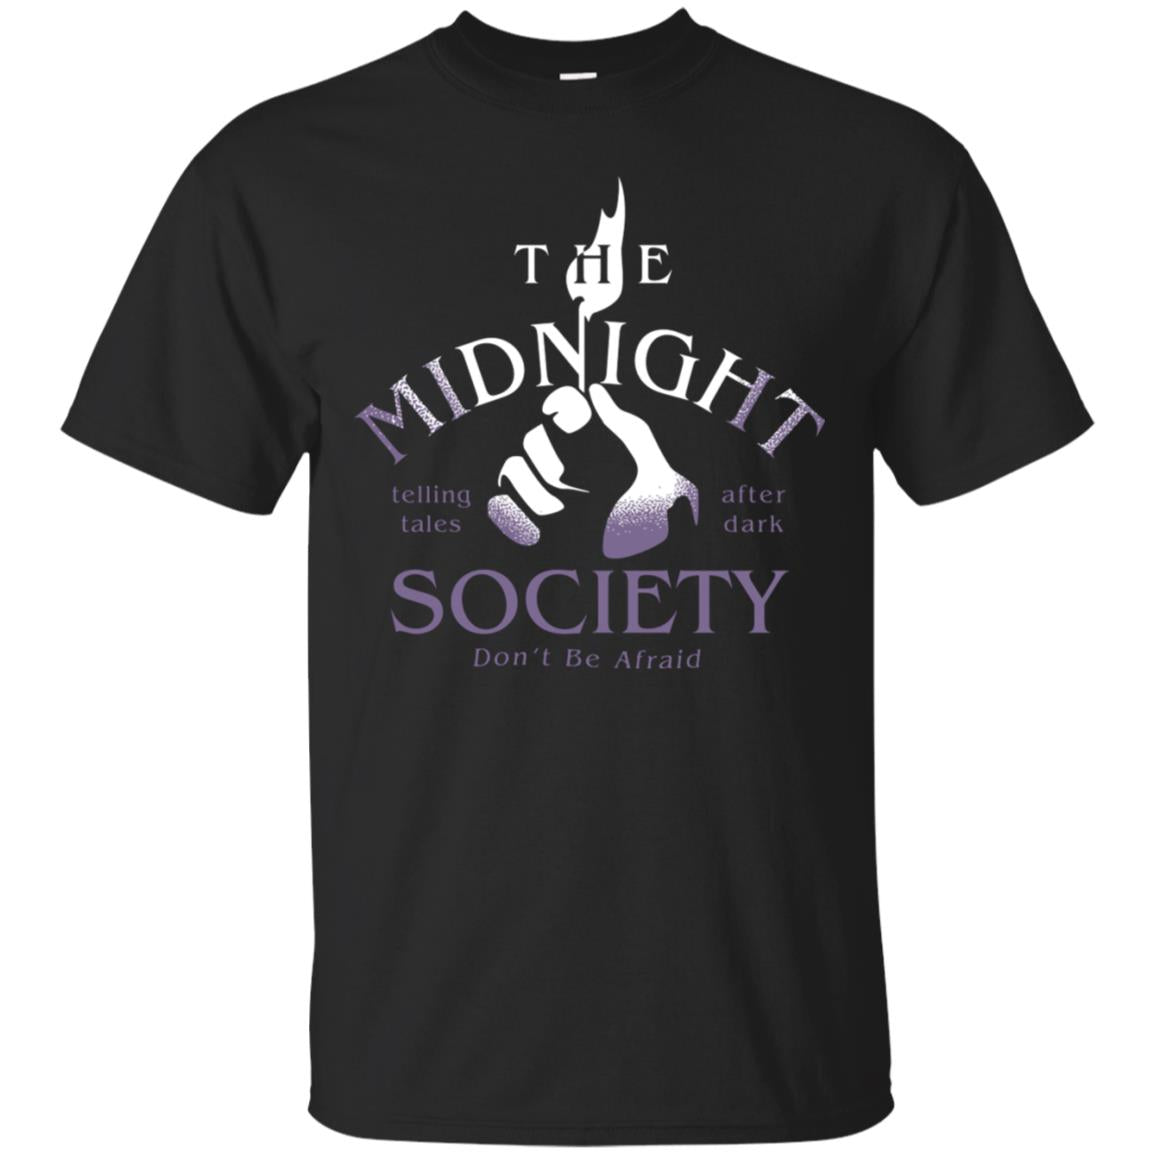 The midnight telling tales after dark society don't be afraid